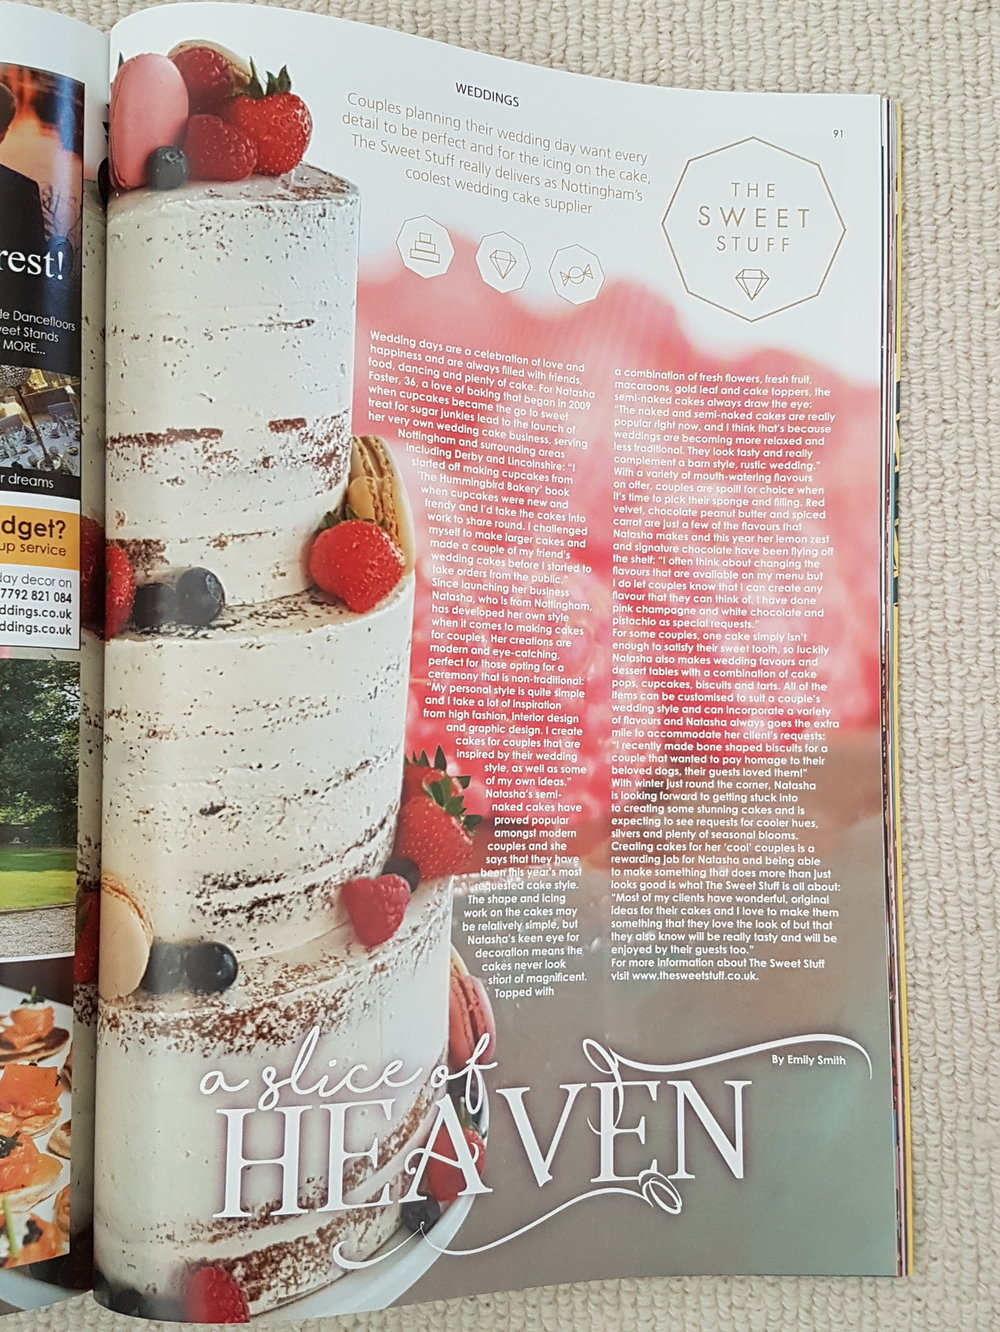 Nottinghamshire Aspect wedding cake feature